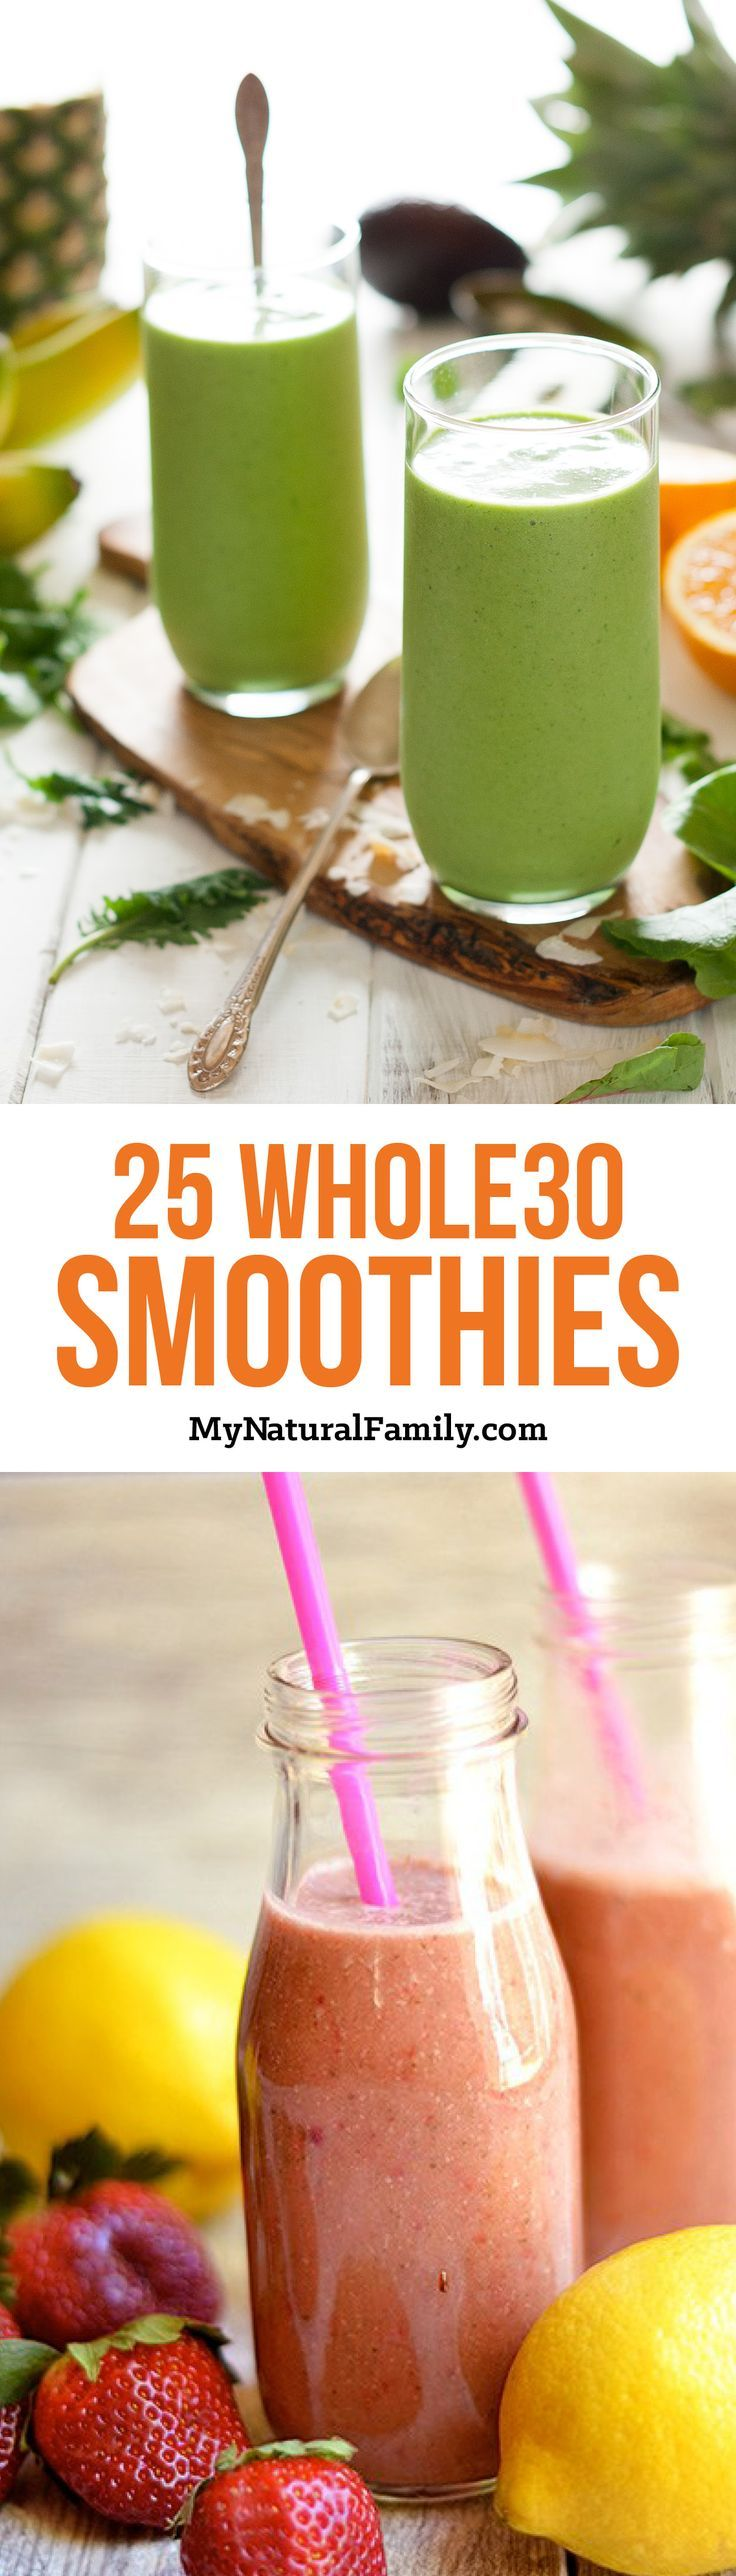 25 Paleo Breakfast Smoothie Recipes Part 2 with No Added Sweeteners